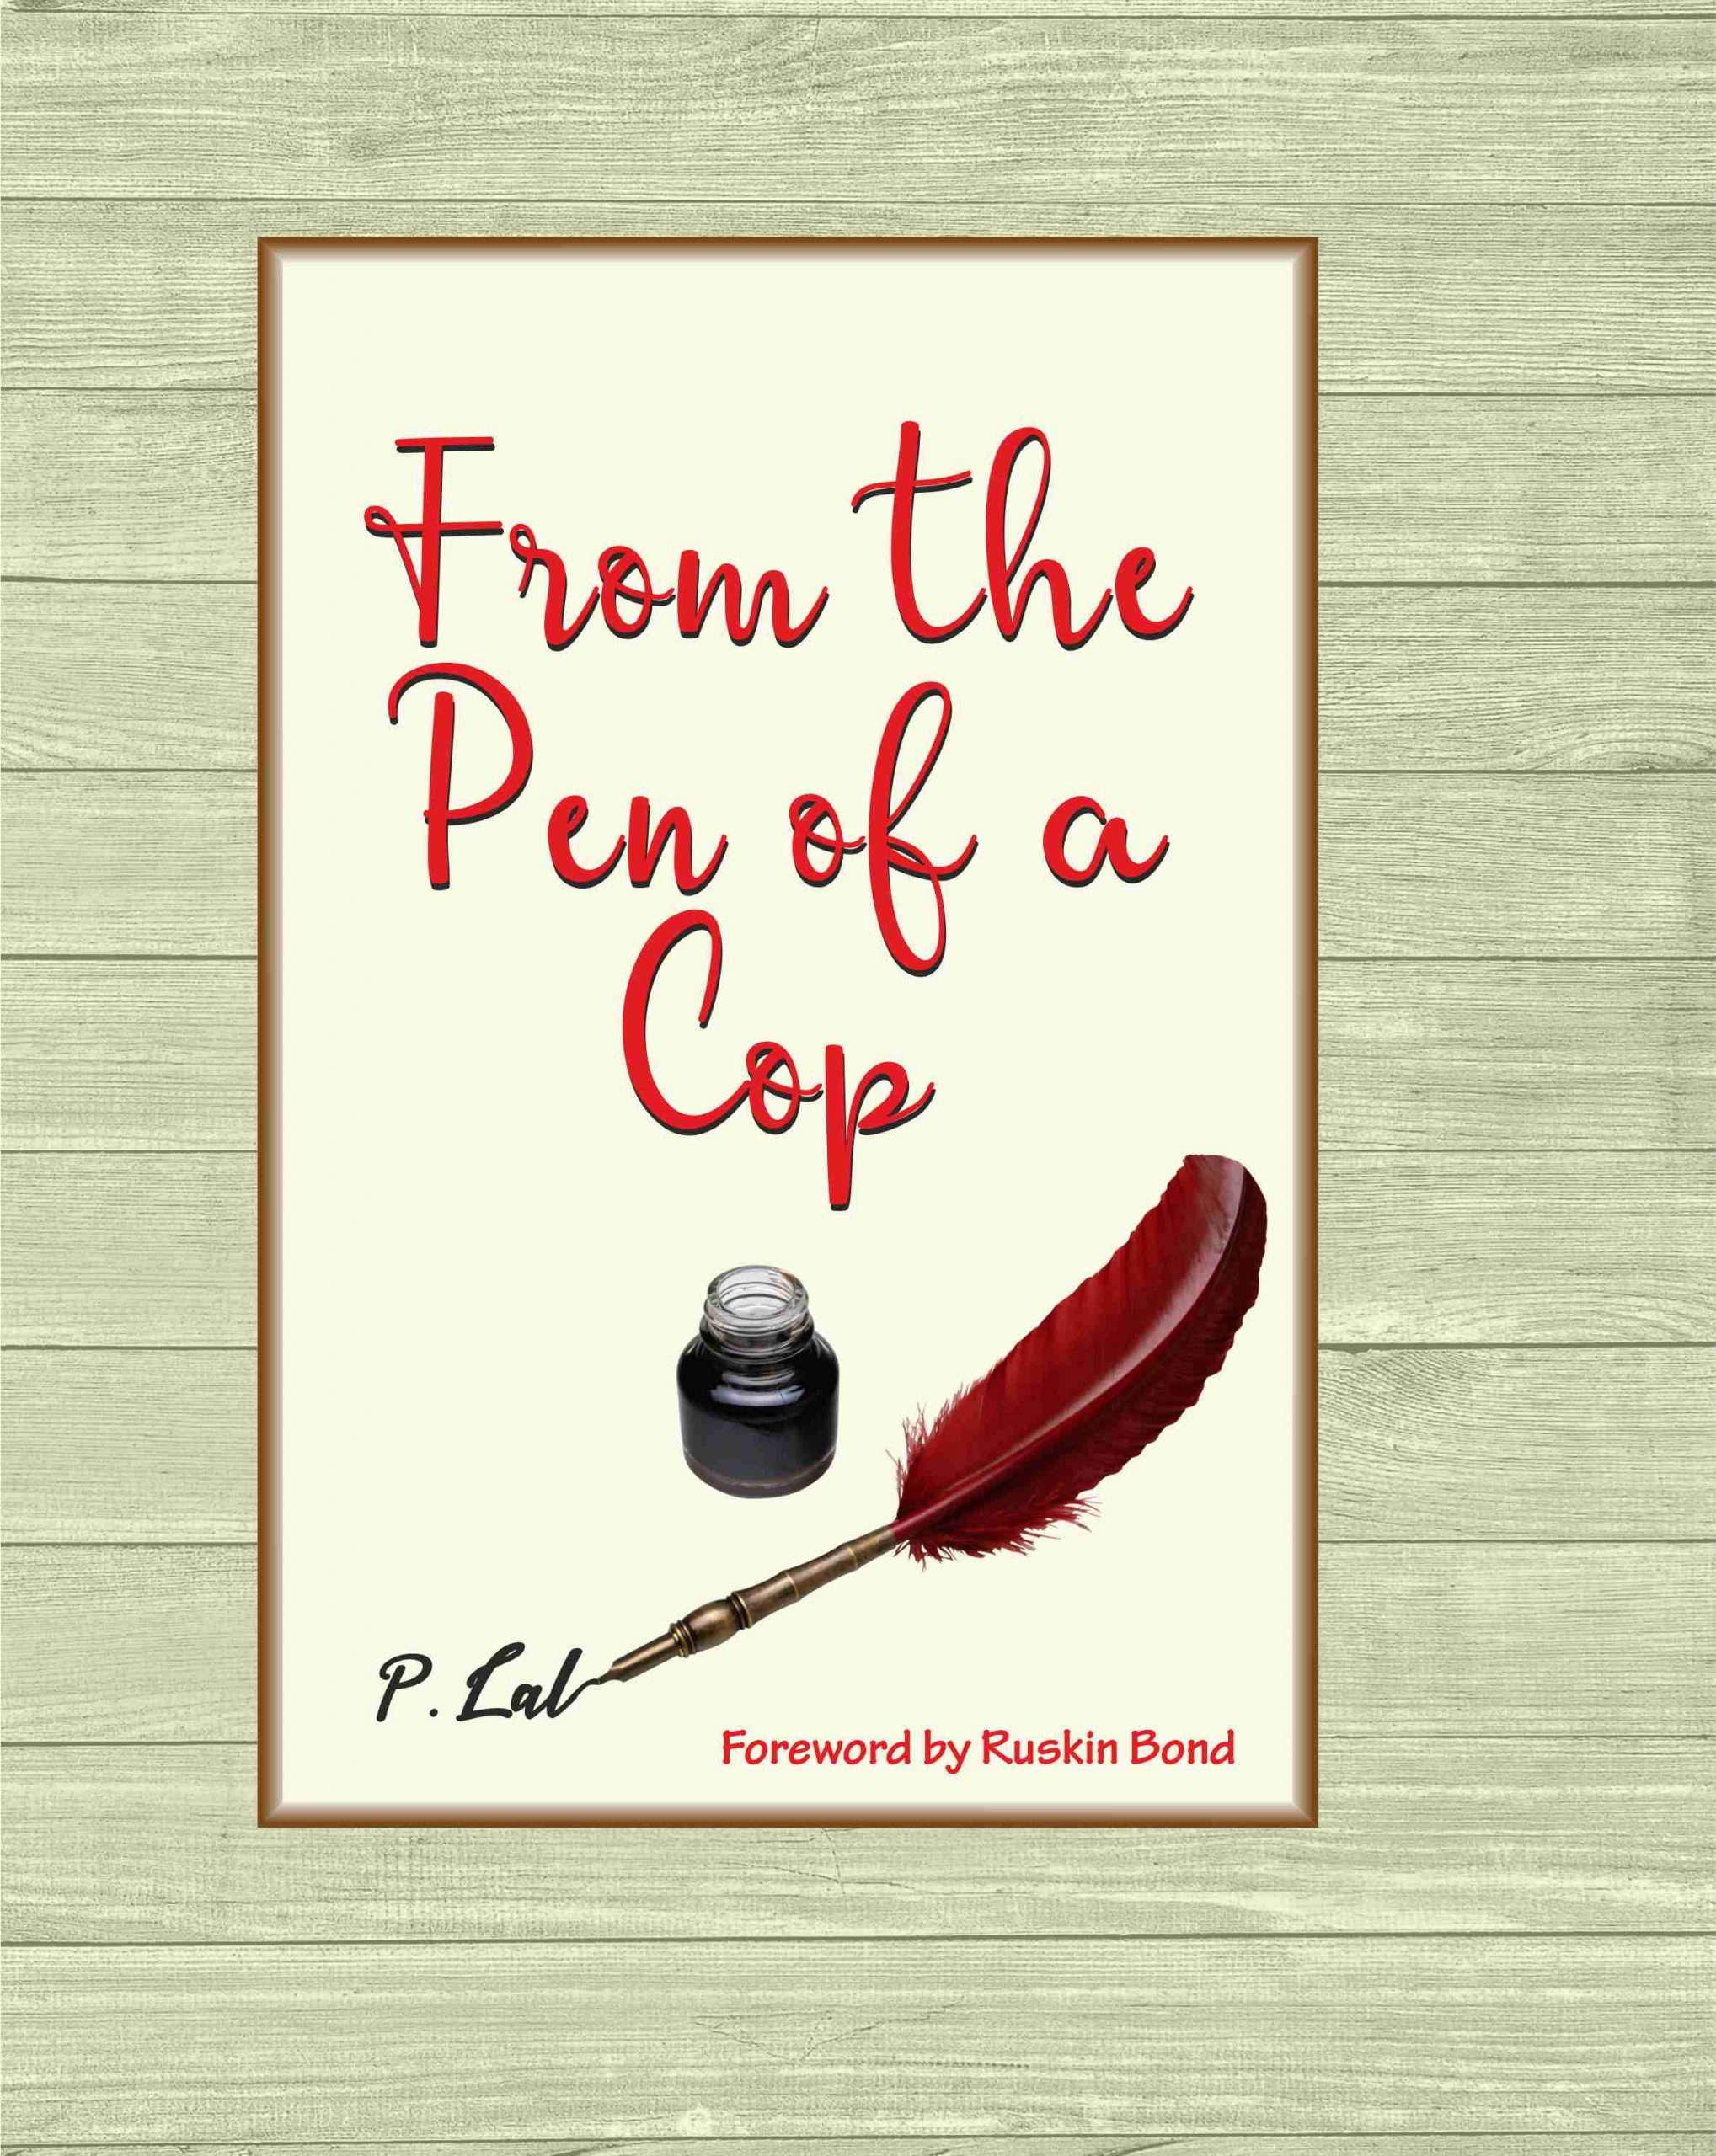 From the Pen of a Cop (Foreword by Ruskin Bond) by P. Lal. Released by Shri V.P. Singh Badnore(Hon'ble Governor of Punjab and administrator, UT, Chandigarh